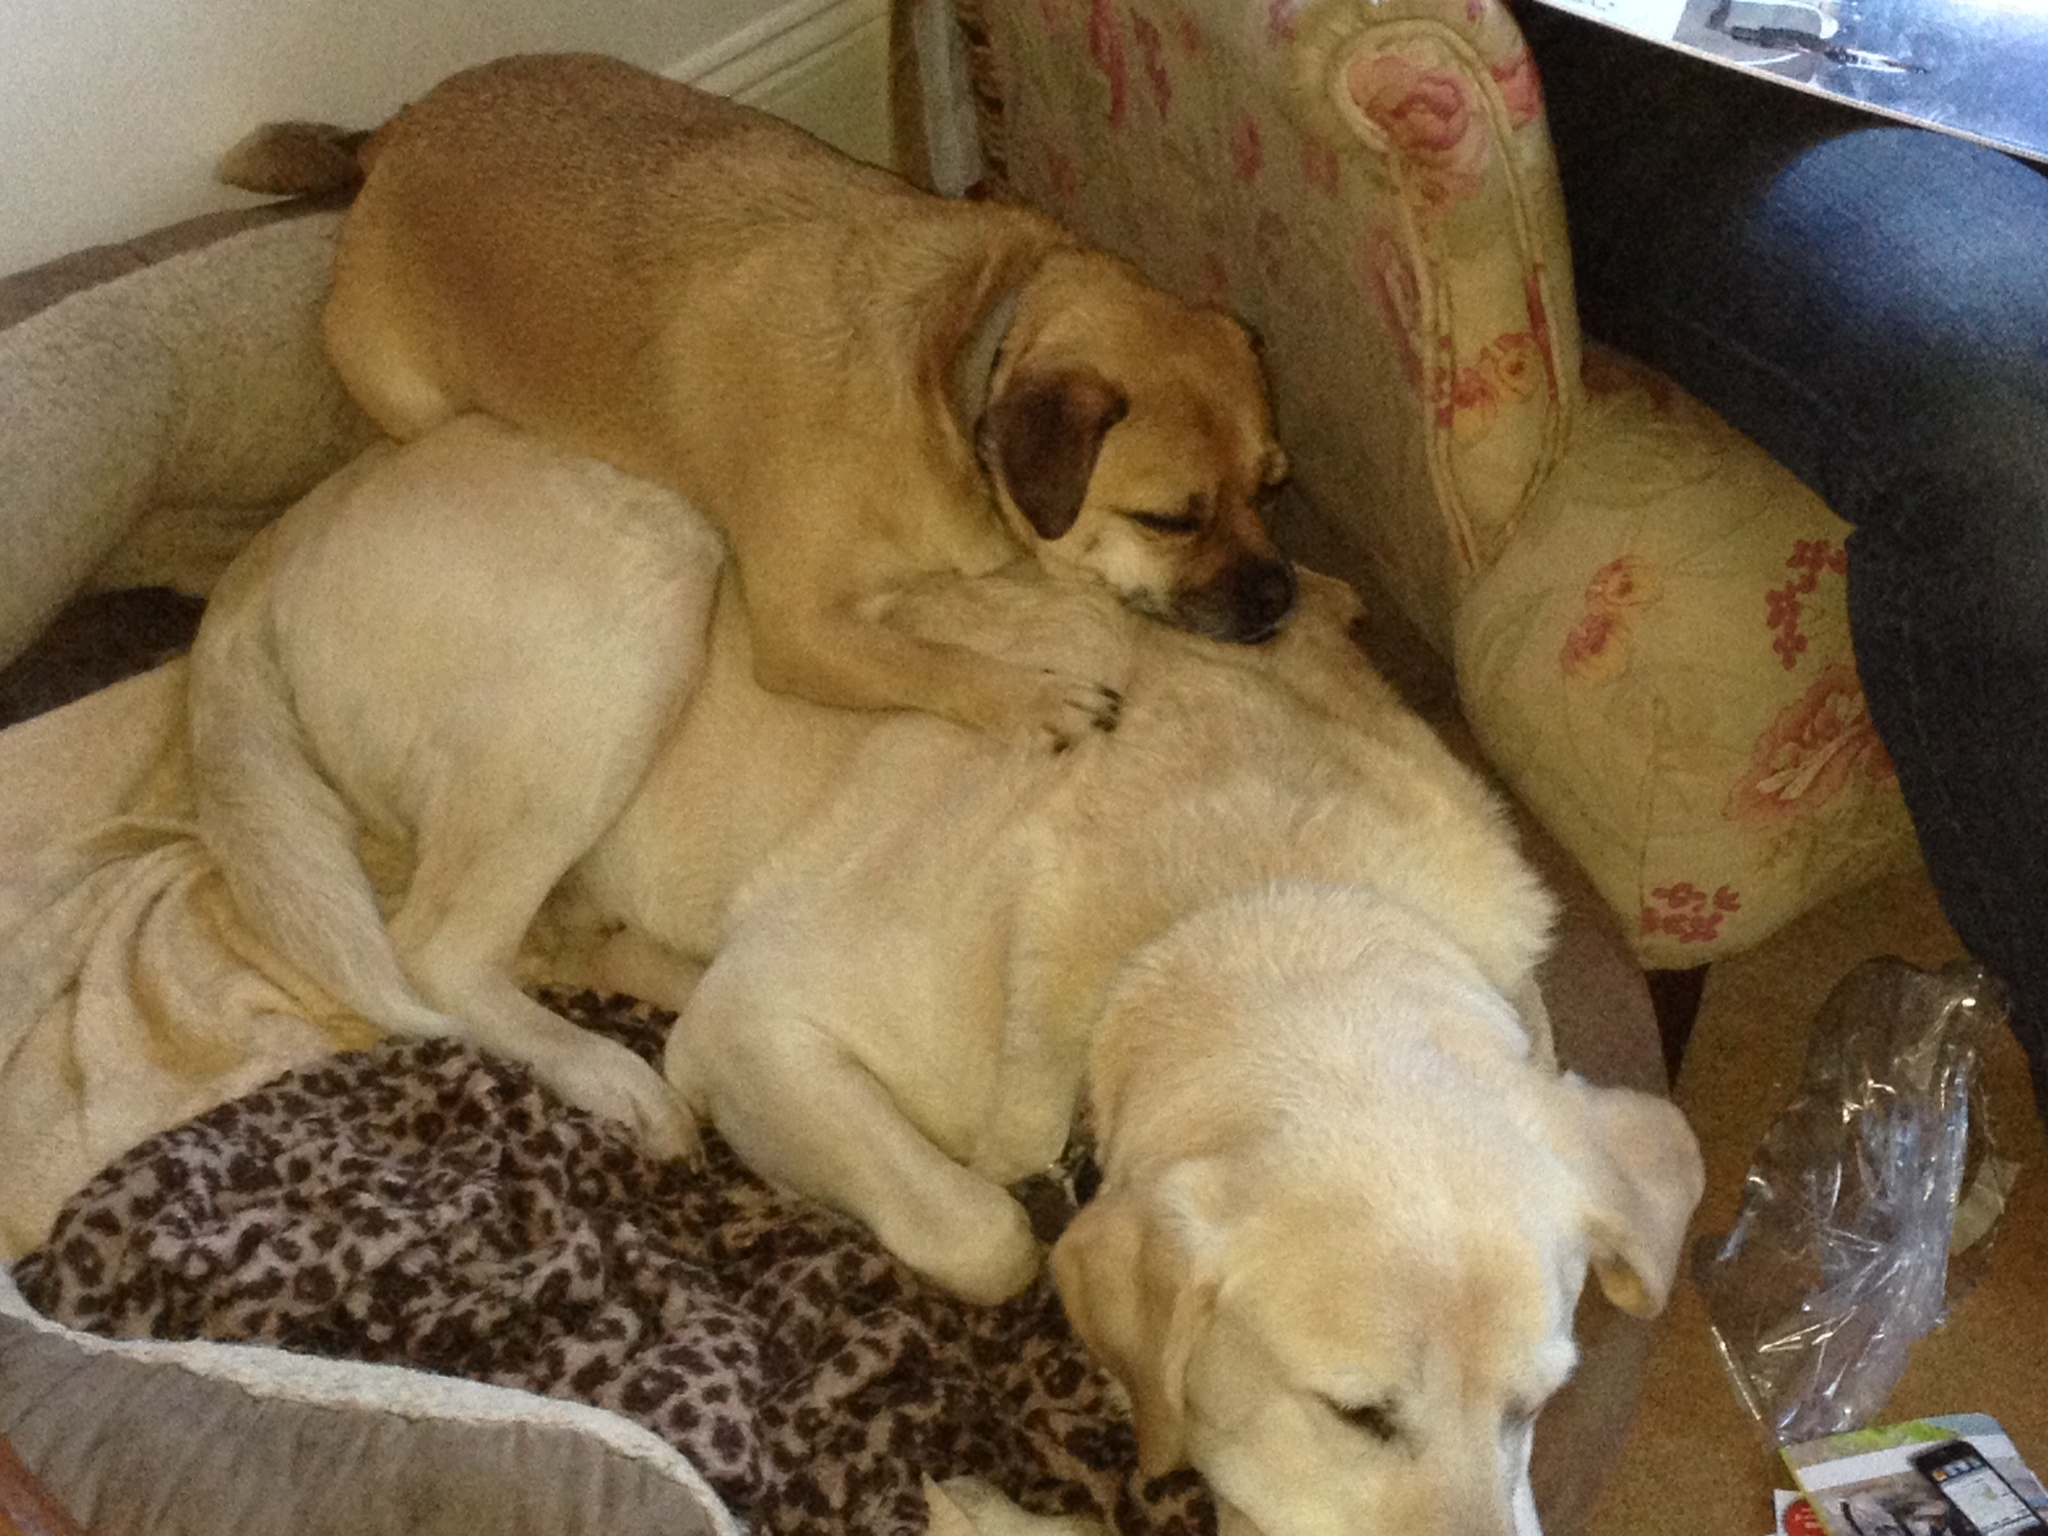 Pepper, on top, using her best friend as a cushion